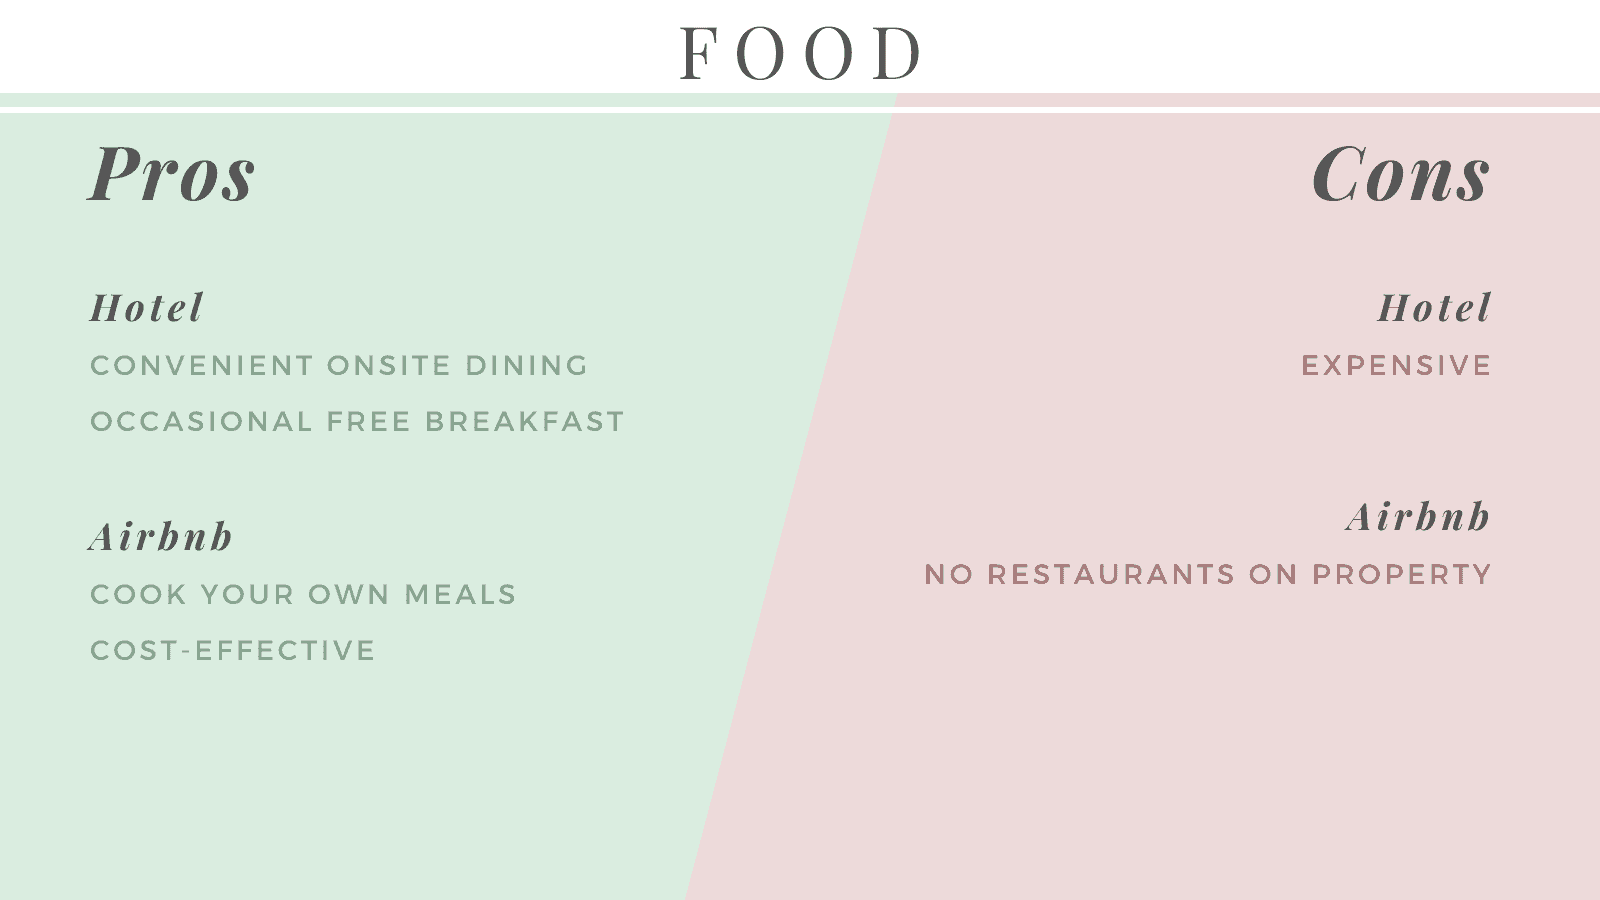 Hotel vs Airbnb Food Pros and Cons